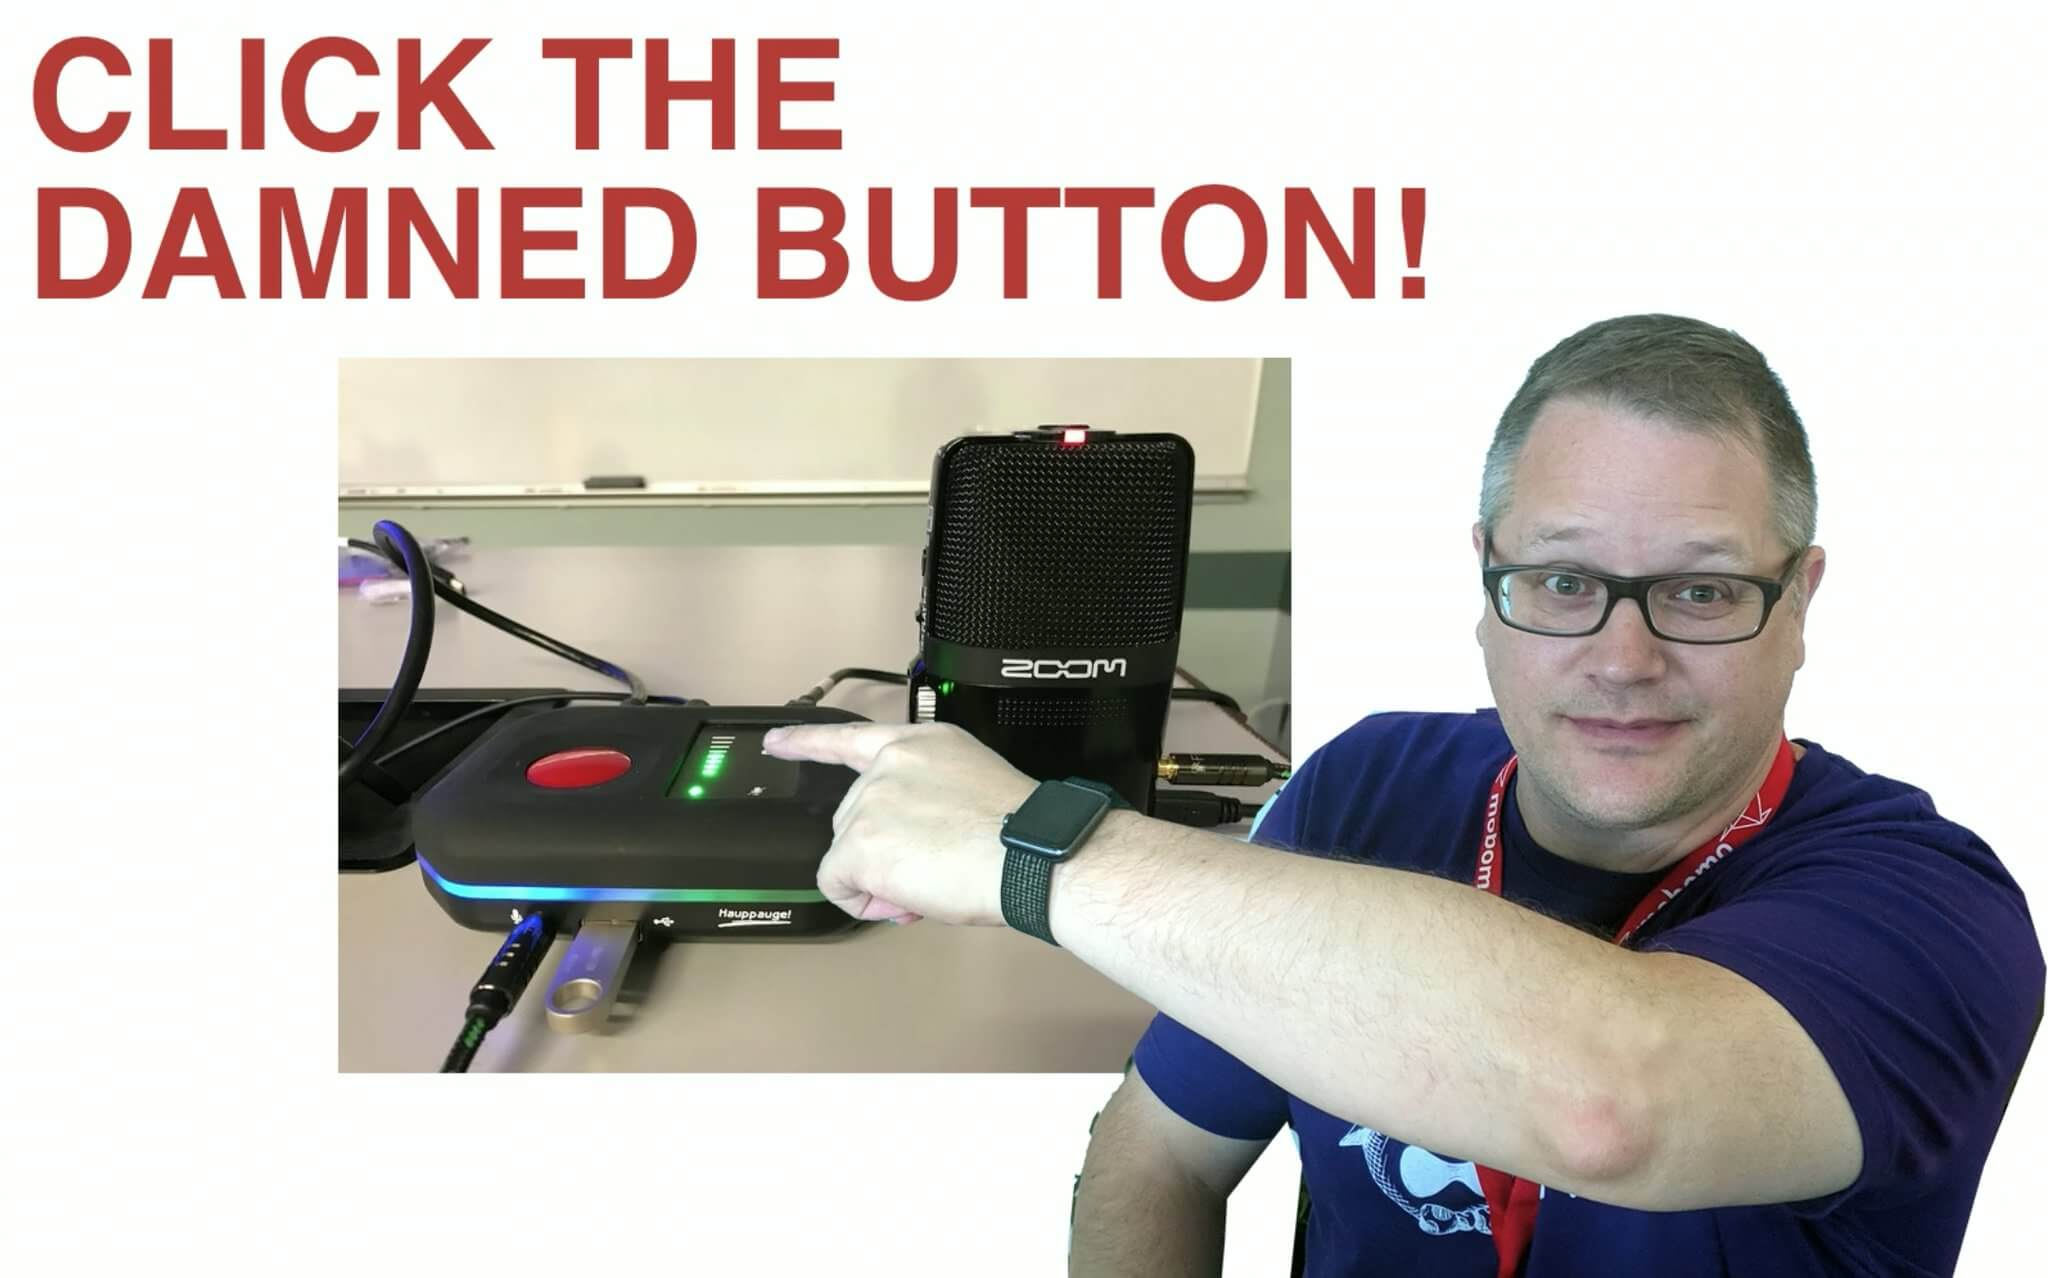 Kevin Thull telling you to push the damn button!